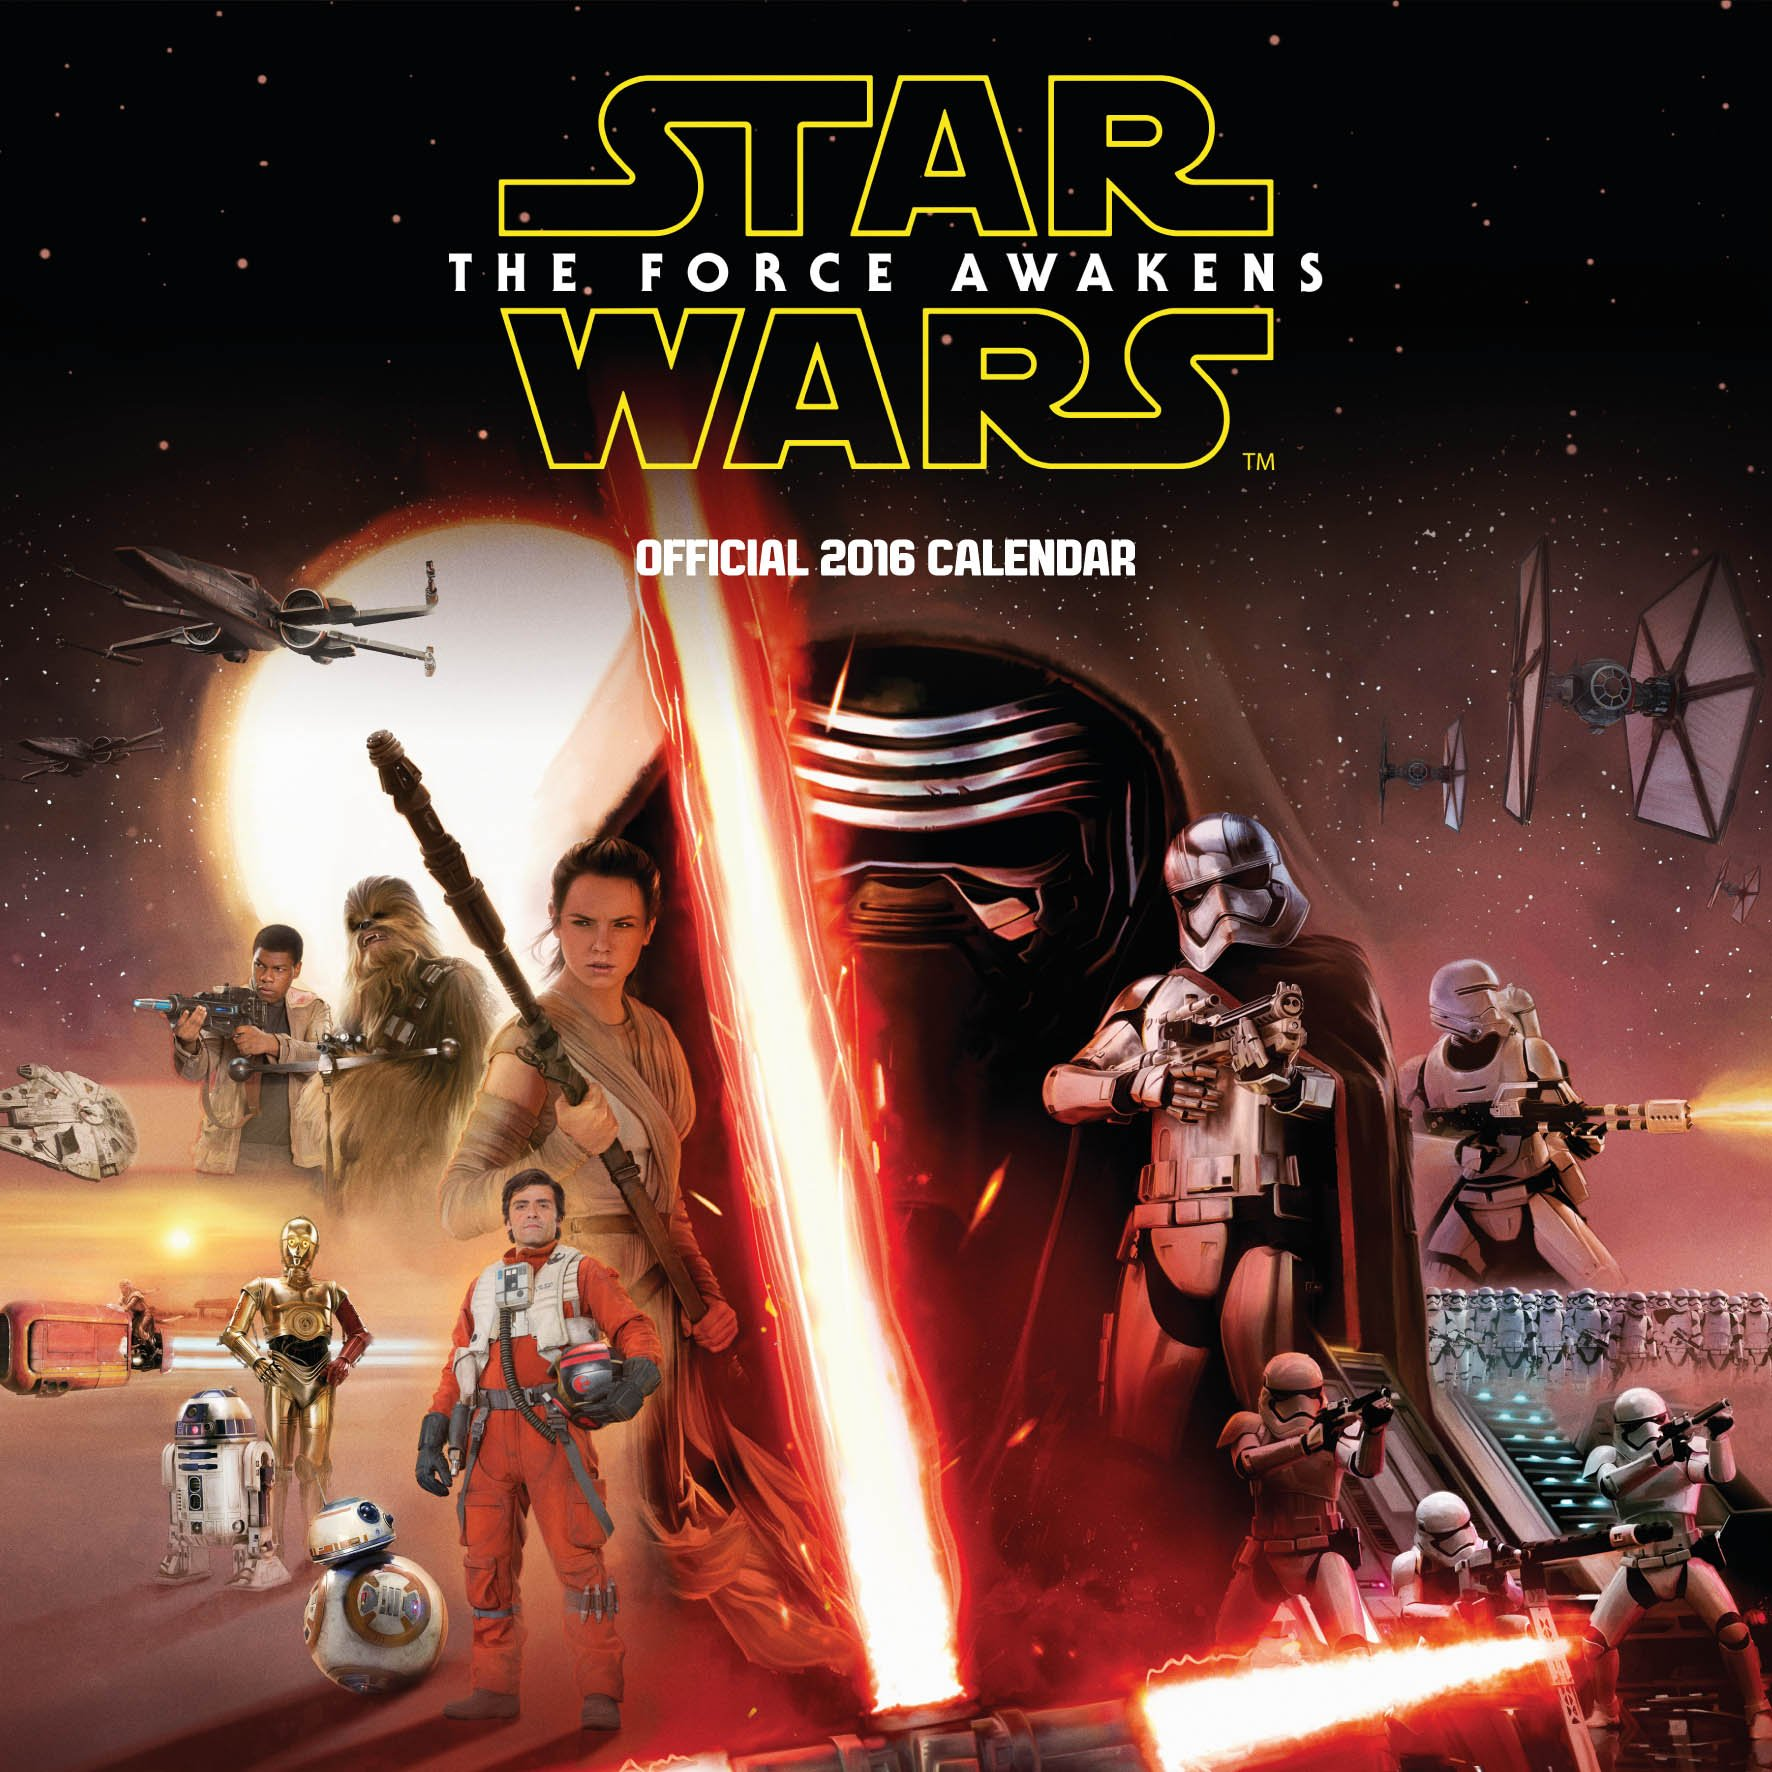 The Official Star Wars Episode 7 Movie 2016 Square Calendar (Calendar 2016) Calendario – 4 sep 2015 Danilo Danilo Promotions Limited 1780548656 Film